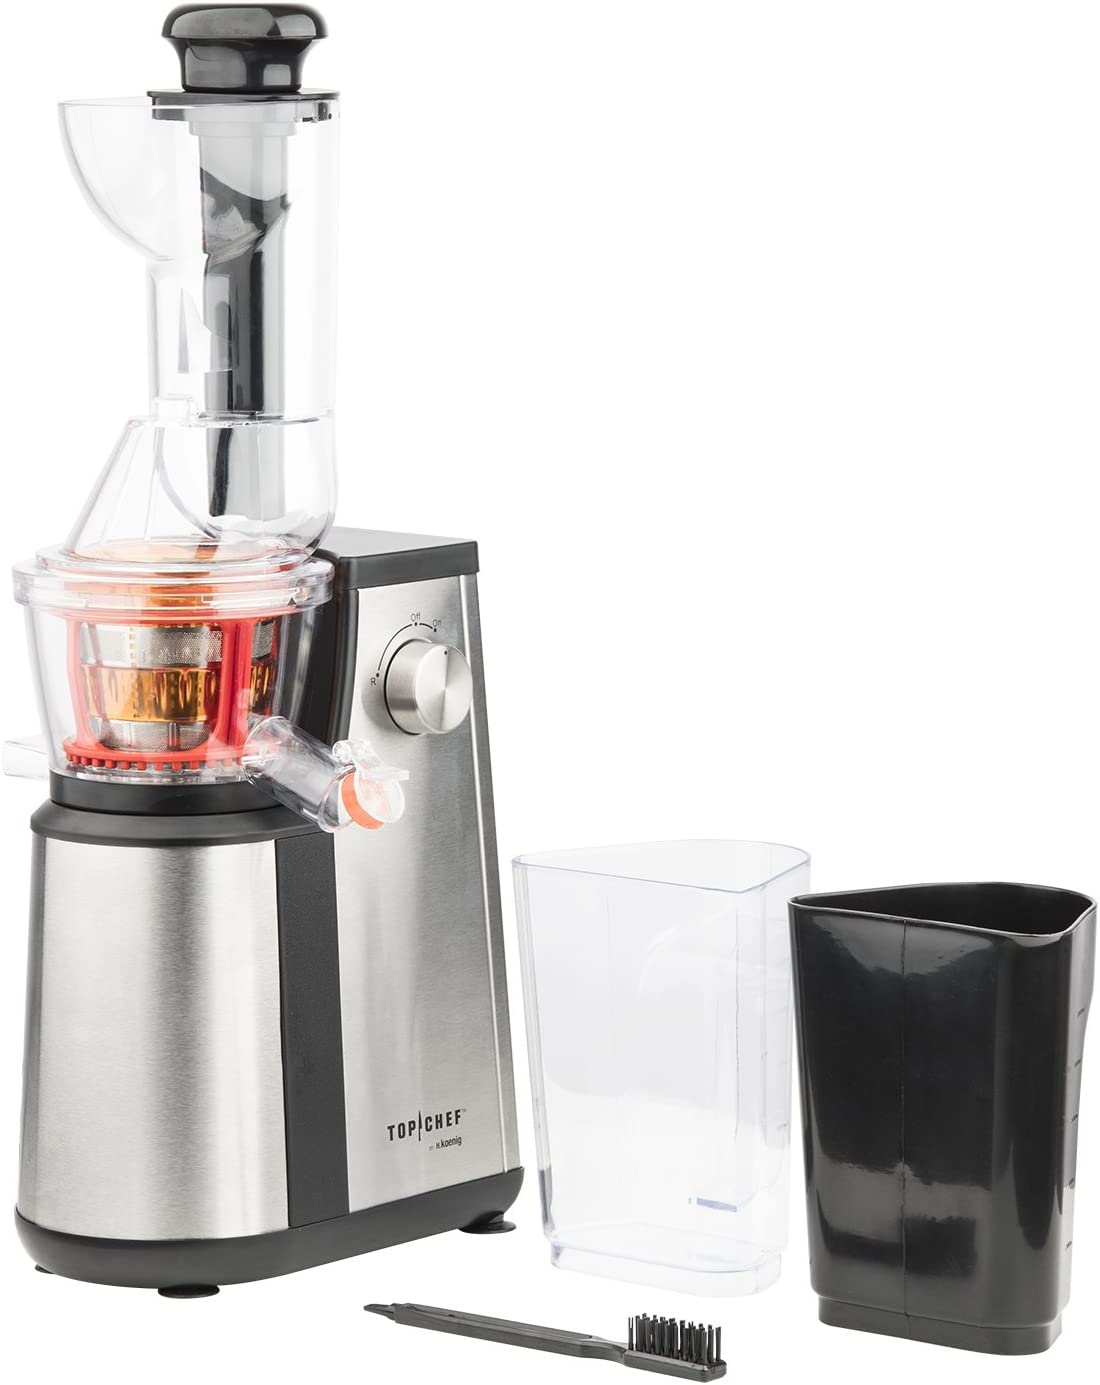 H. Koenig Top Chef topc522 extractor de zumo vertical 1 L 400 W ...